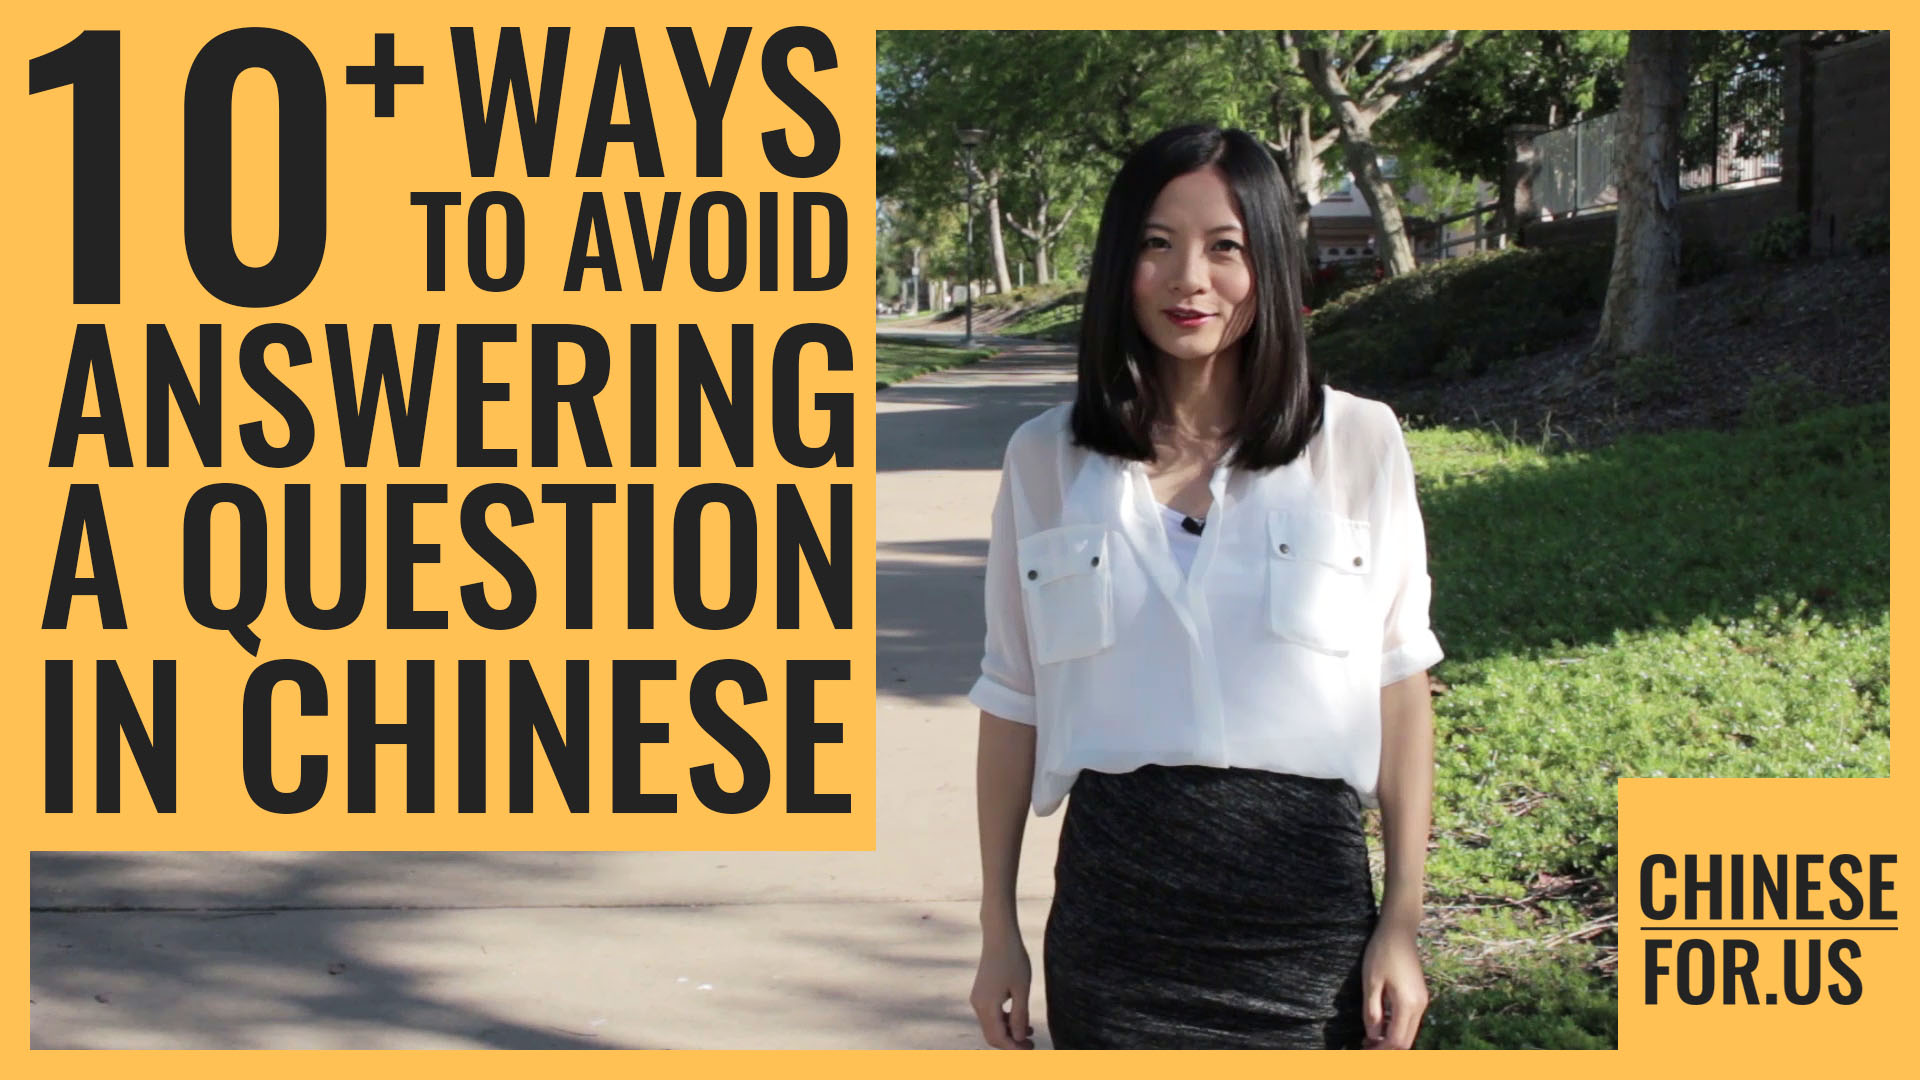 14 Ways To Avoid A Question In Chinese Say No Comment In Chinese